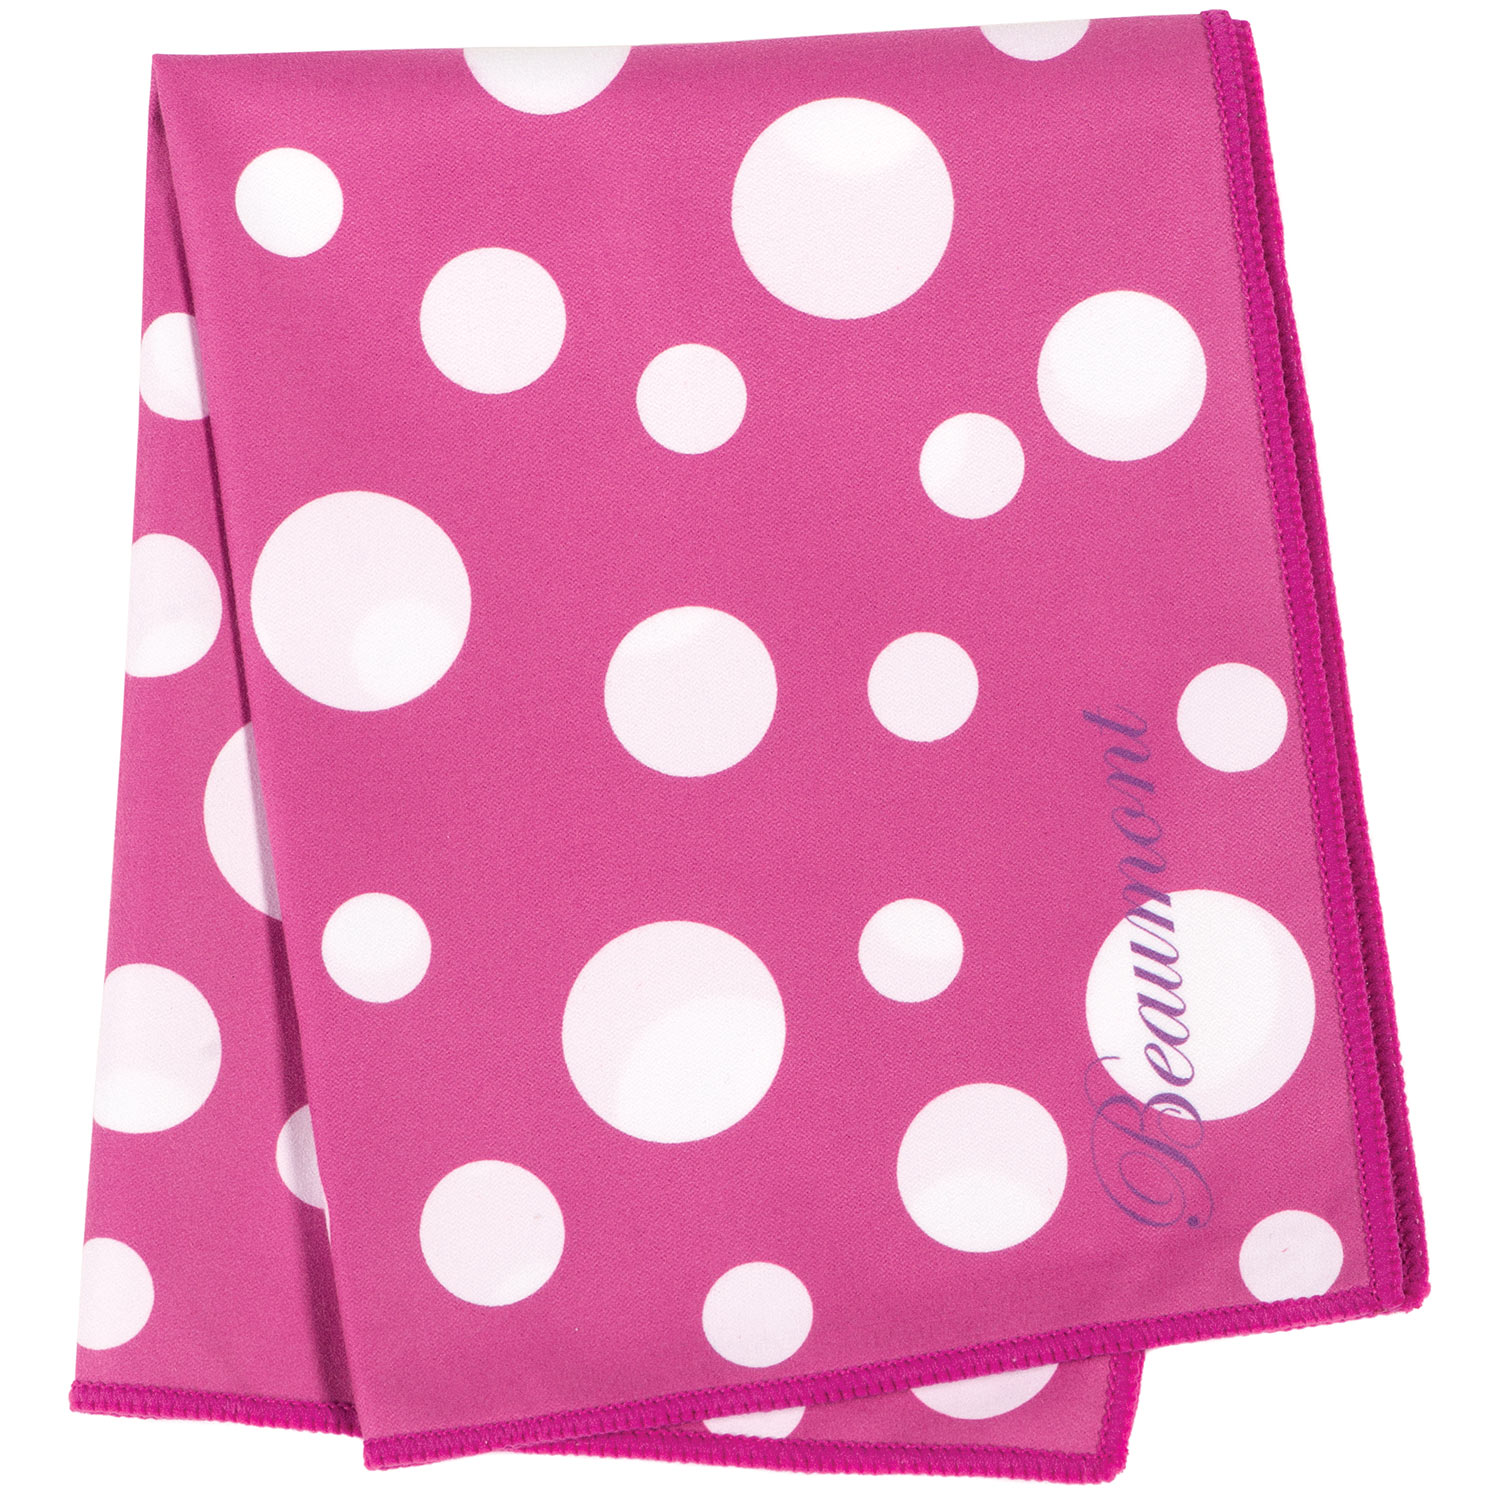 Beaumont Pink Polka Dot Microfiber Large Instrument Polishing Cloth by